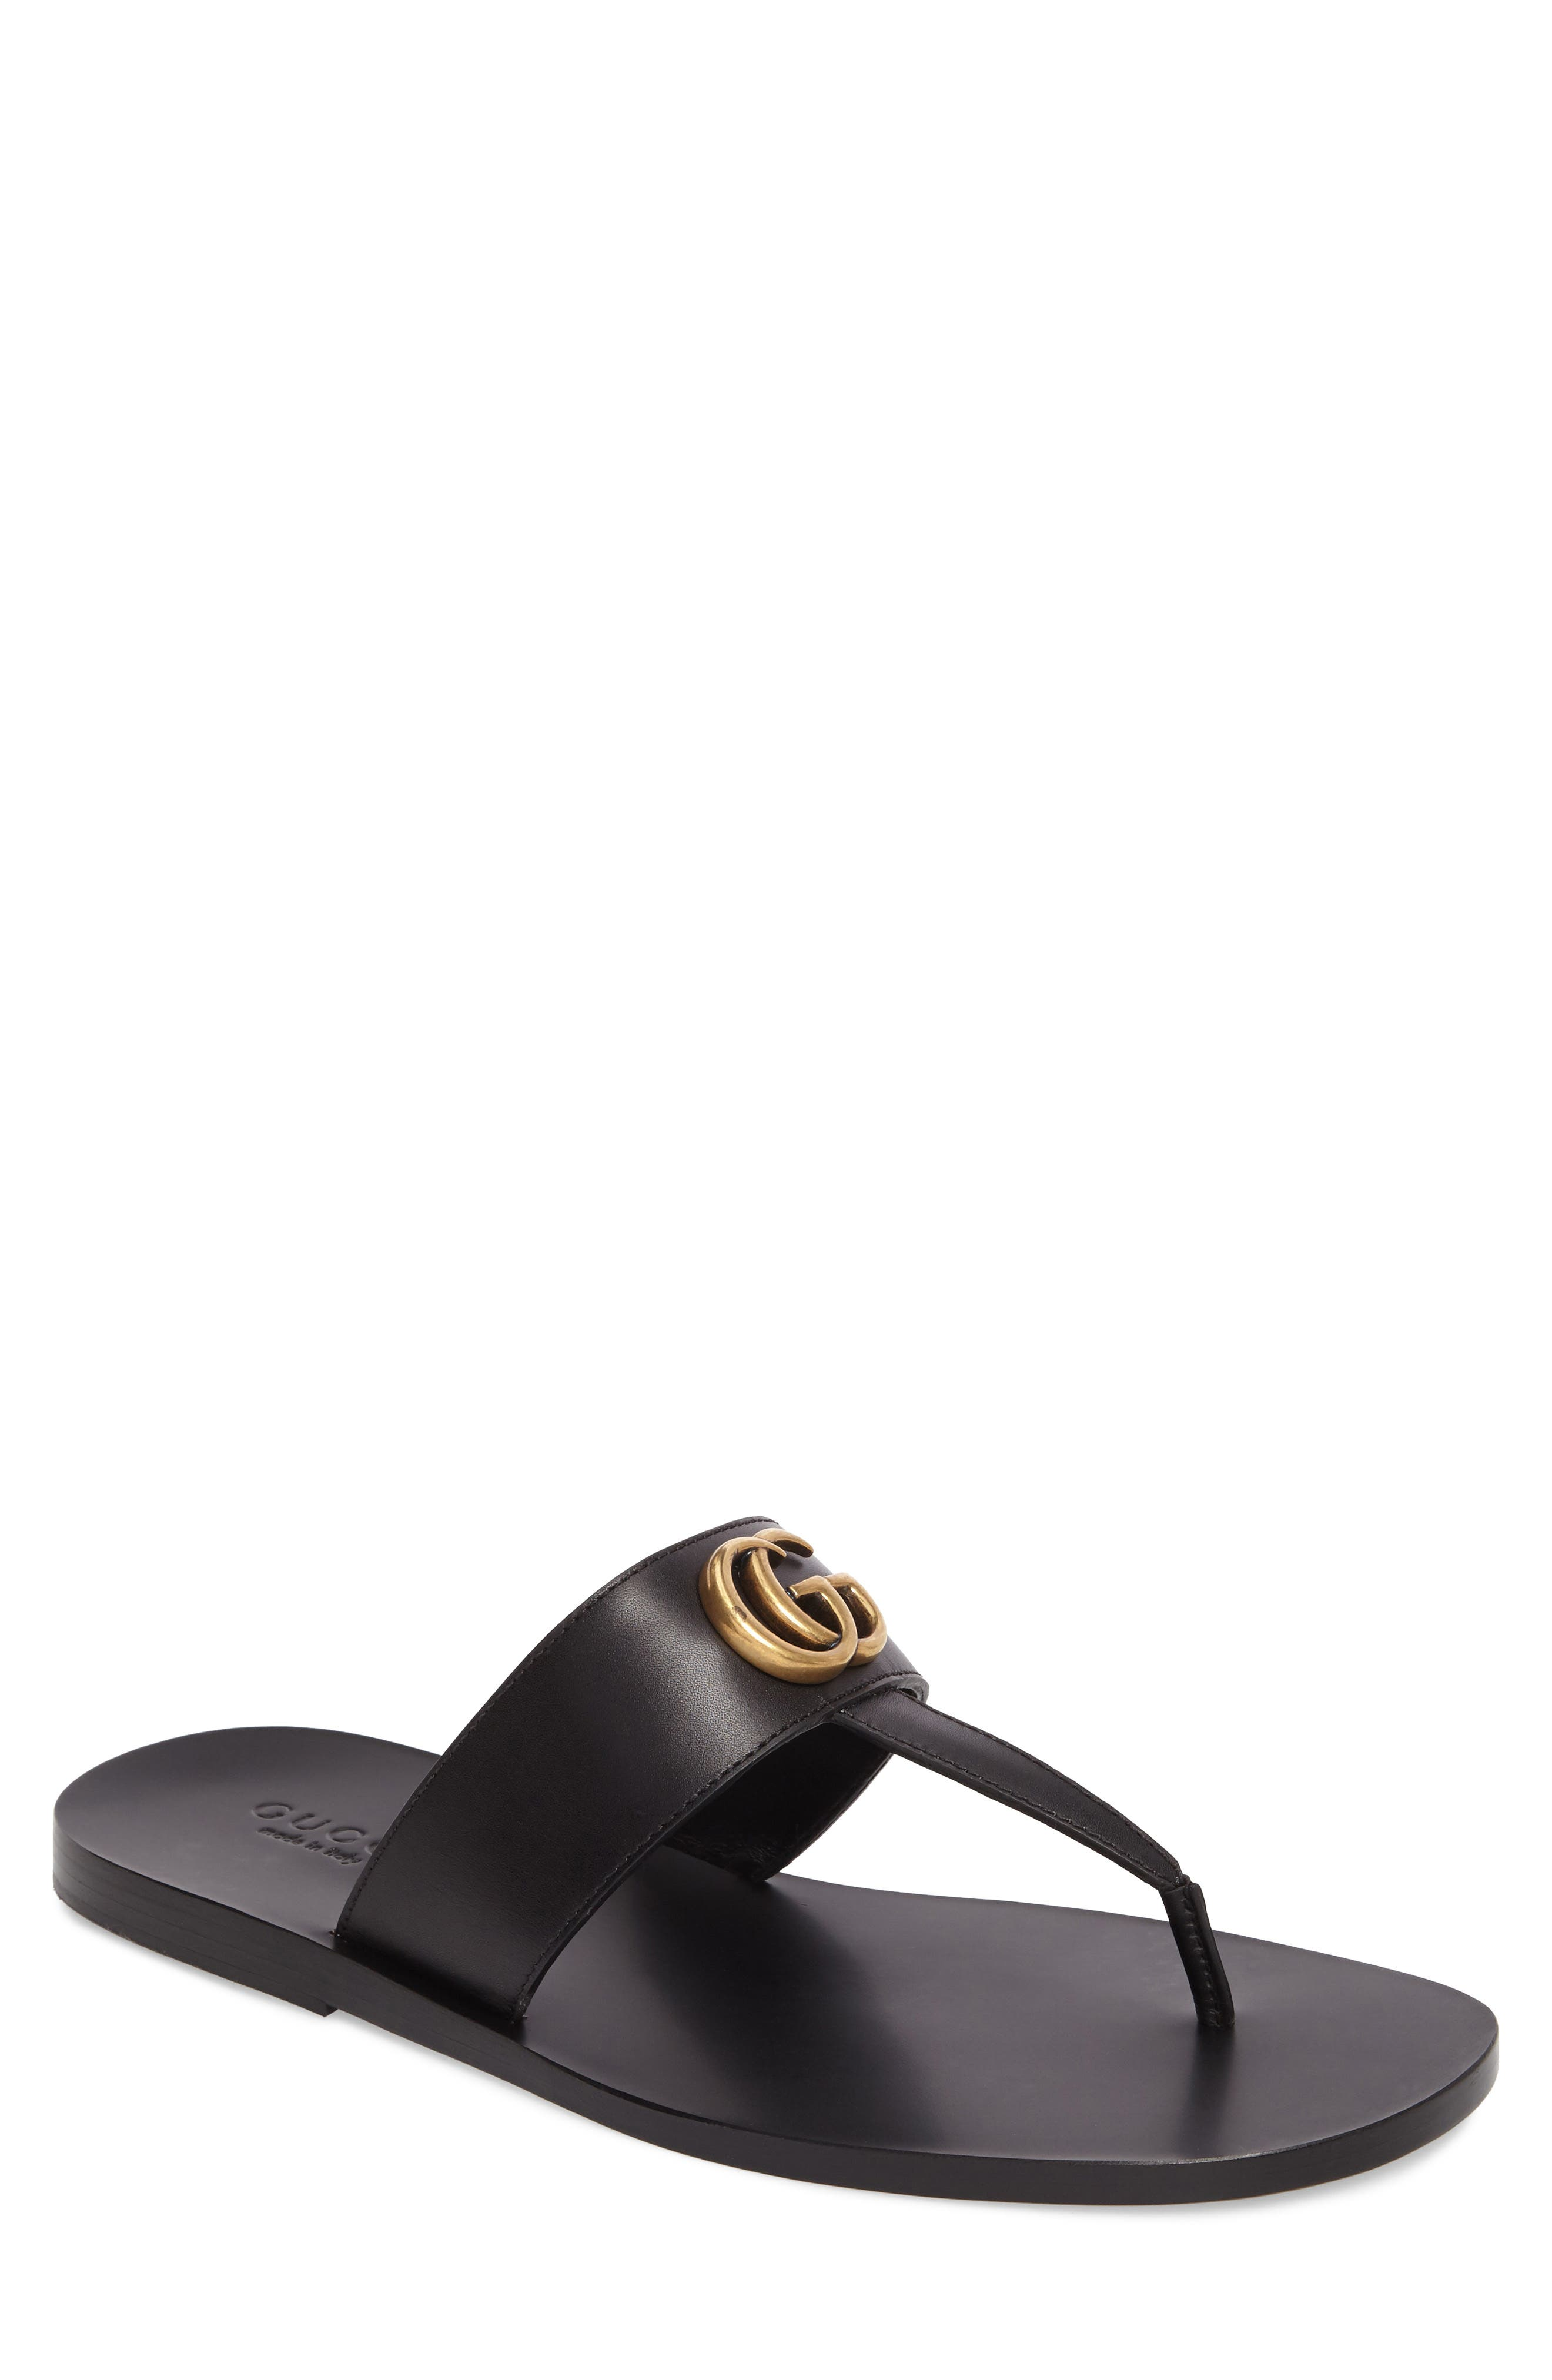 GUCCI, Marmont Double G Leather Thong Sandal, Main thumbnail 1, color, BLACK/ GOLD